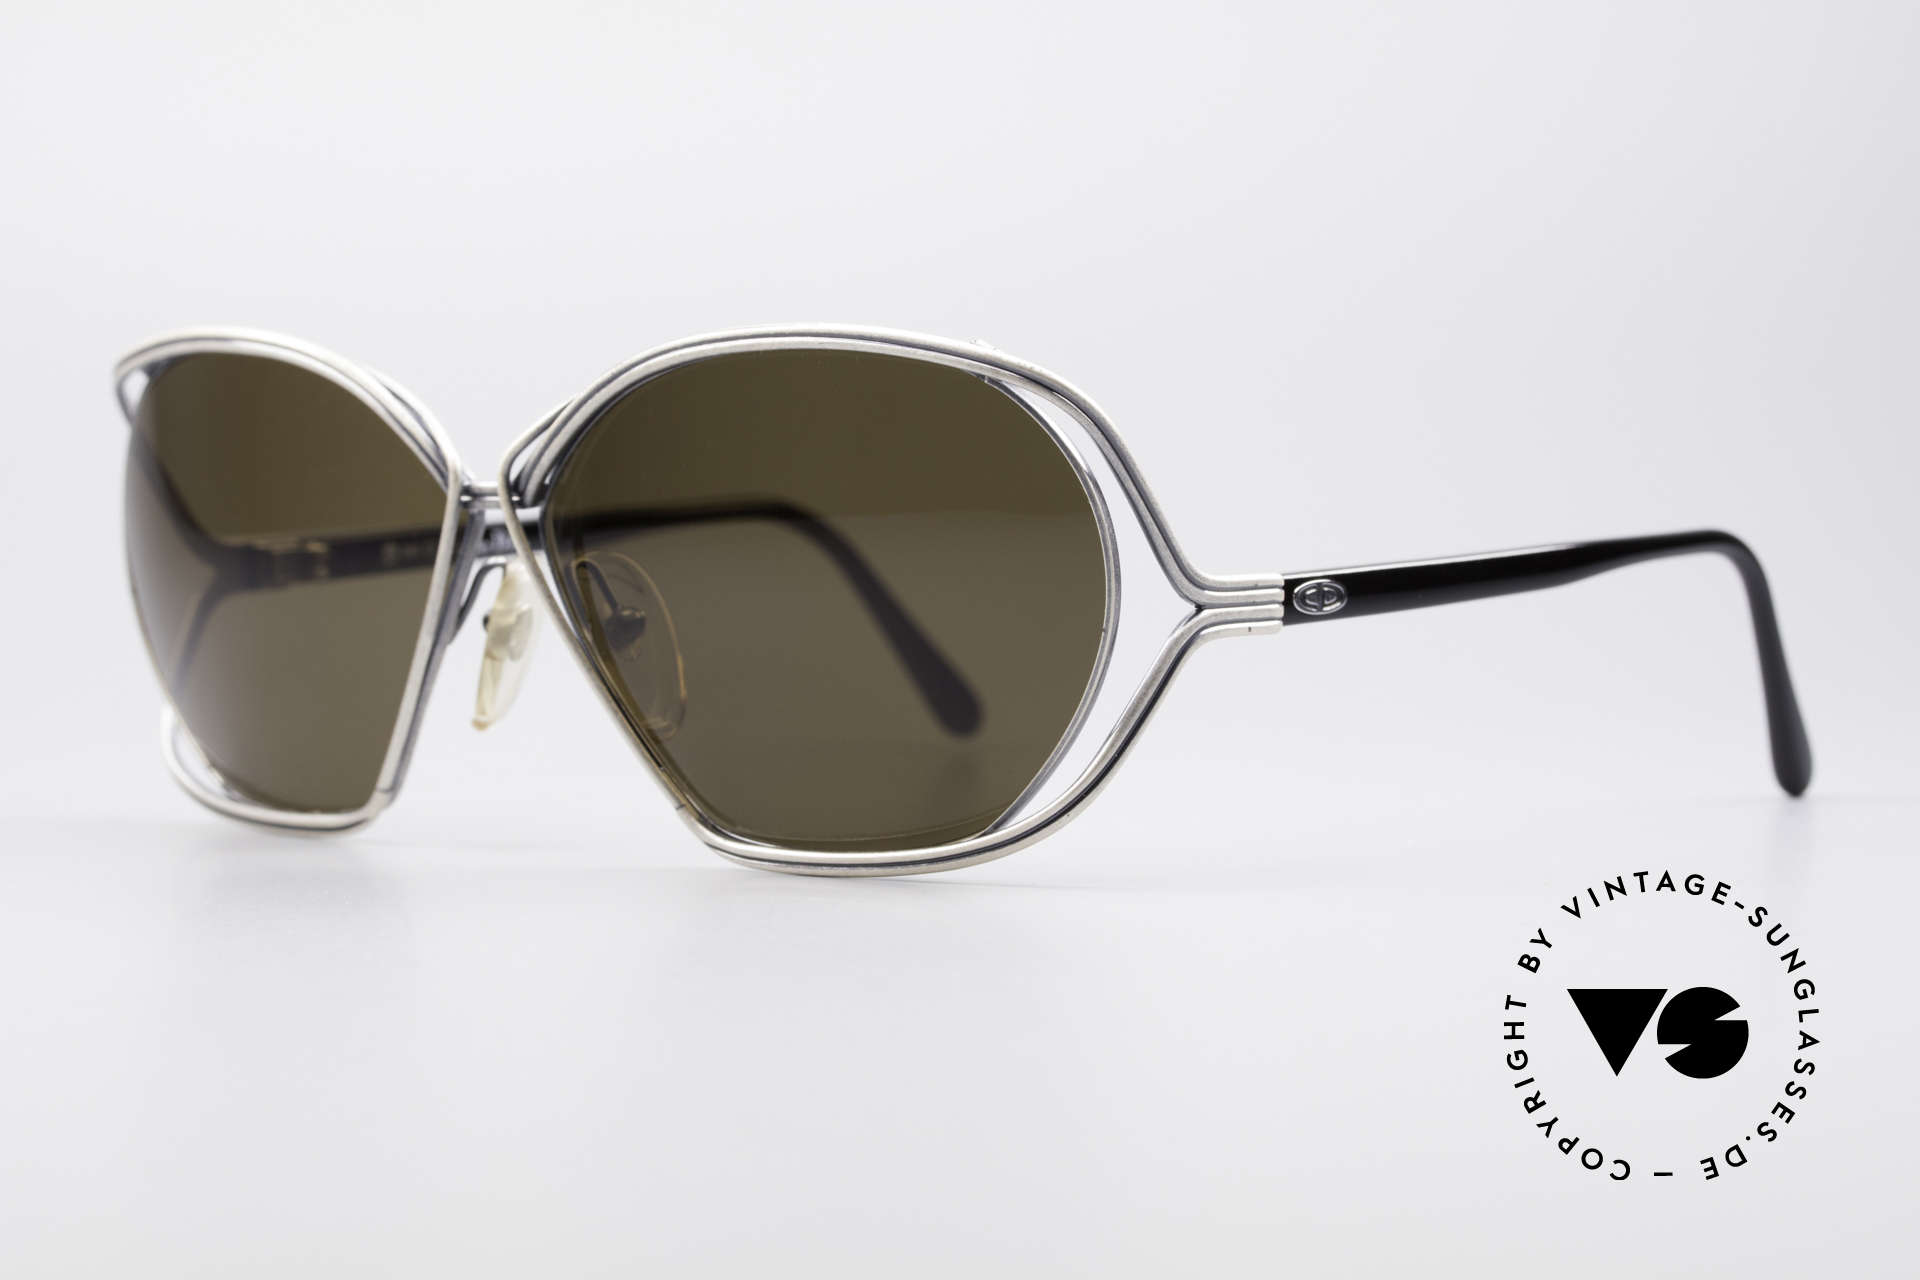 Christian Dior 2499 1980's Ladies Sunglasses, artistical wired metal frame (unique & full of verve), Made for Women